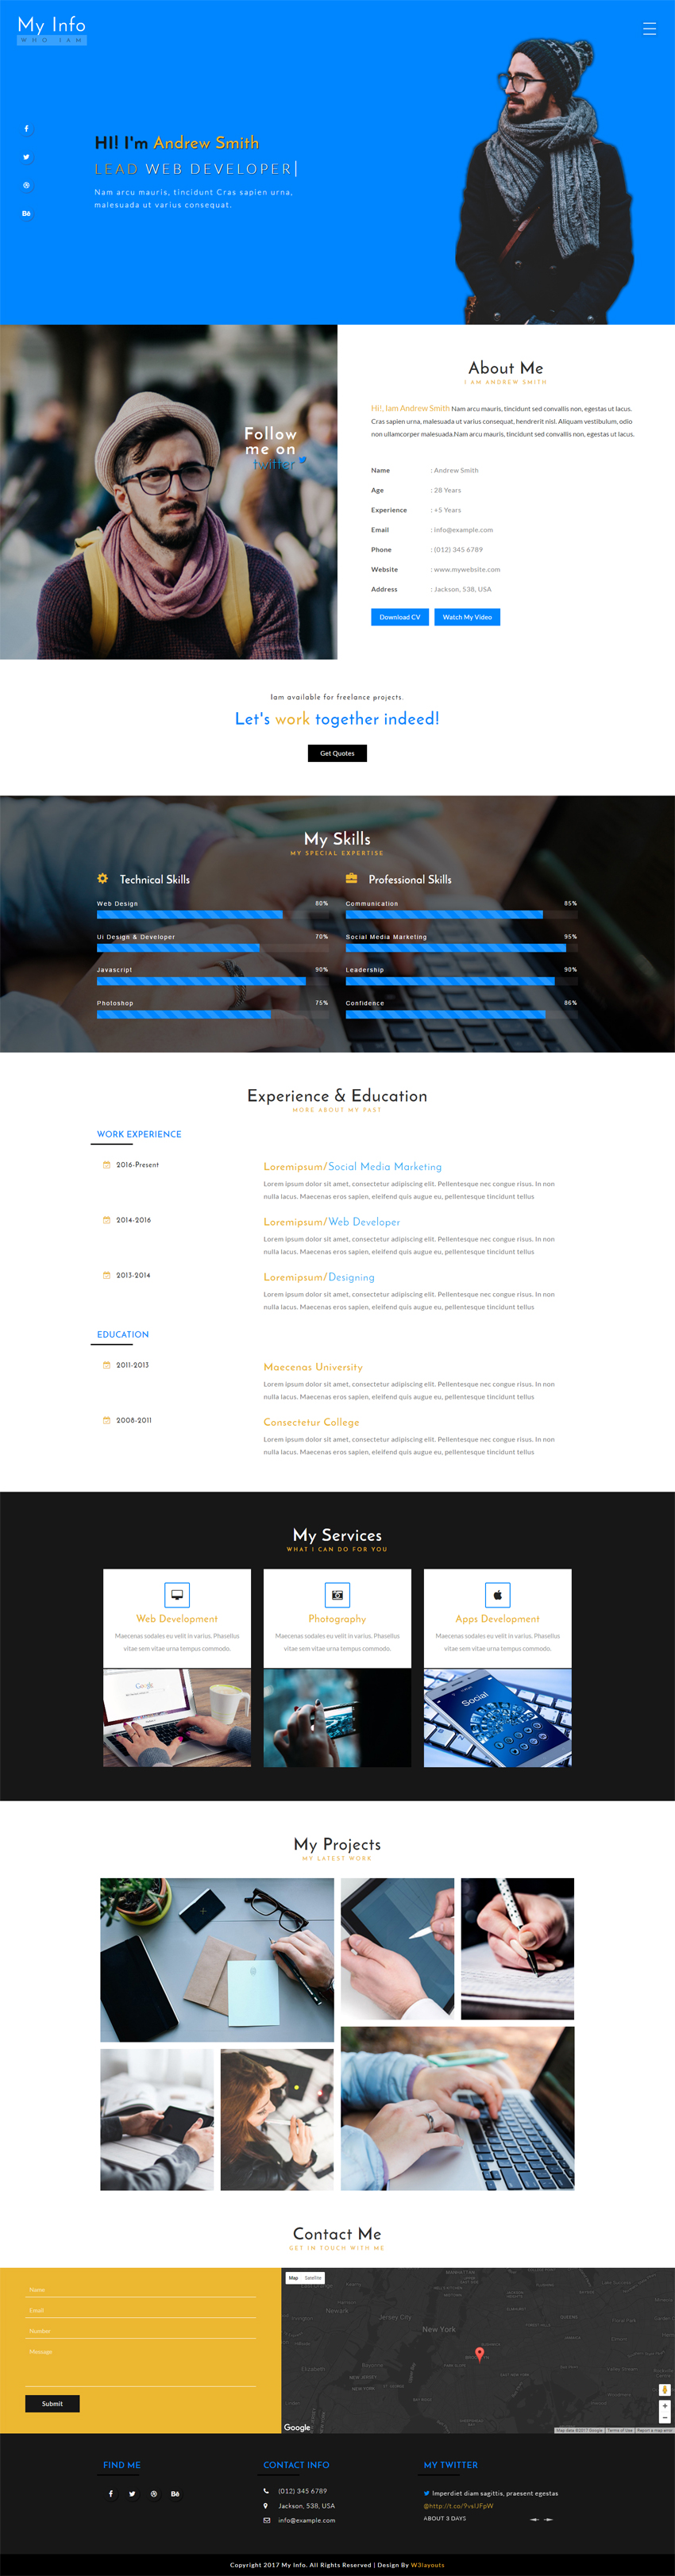 My Info Personal Profile Bootstrap Responsive Web Template